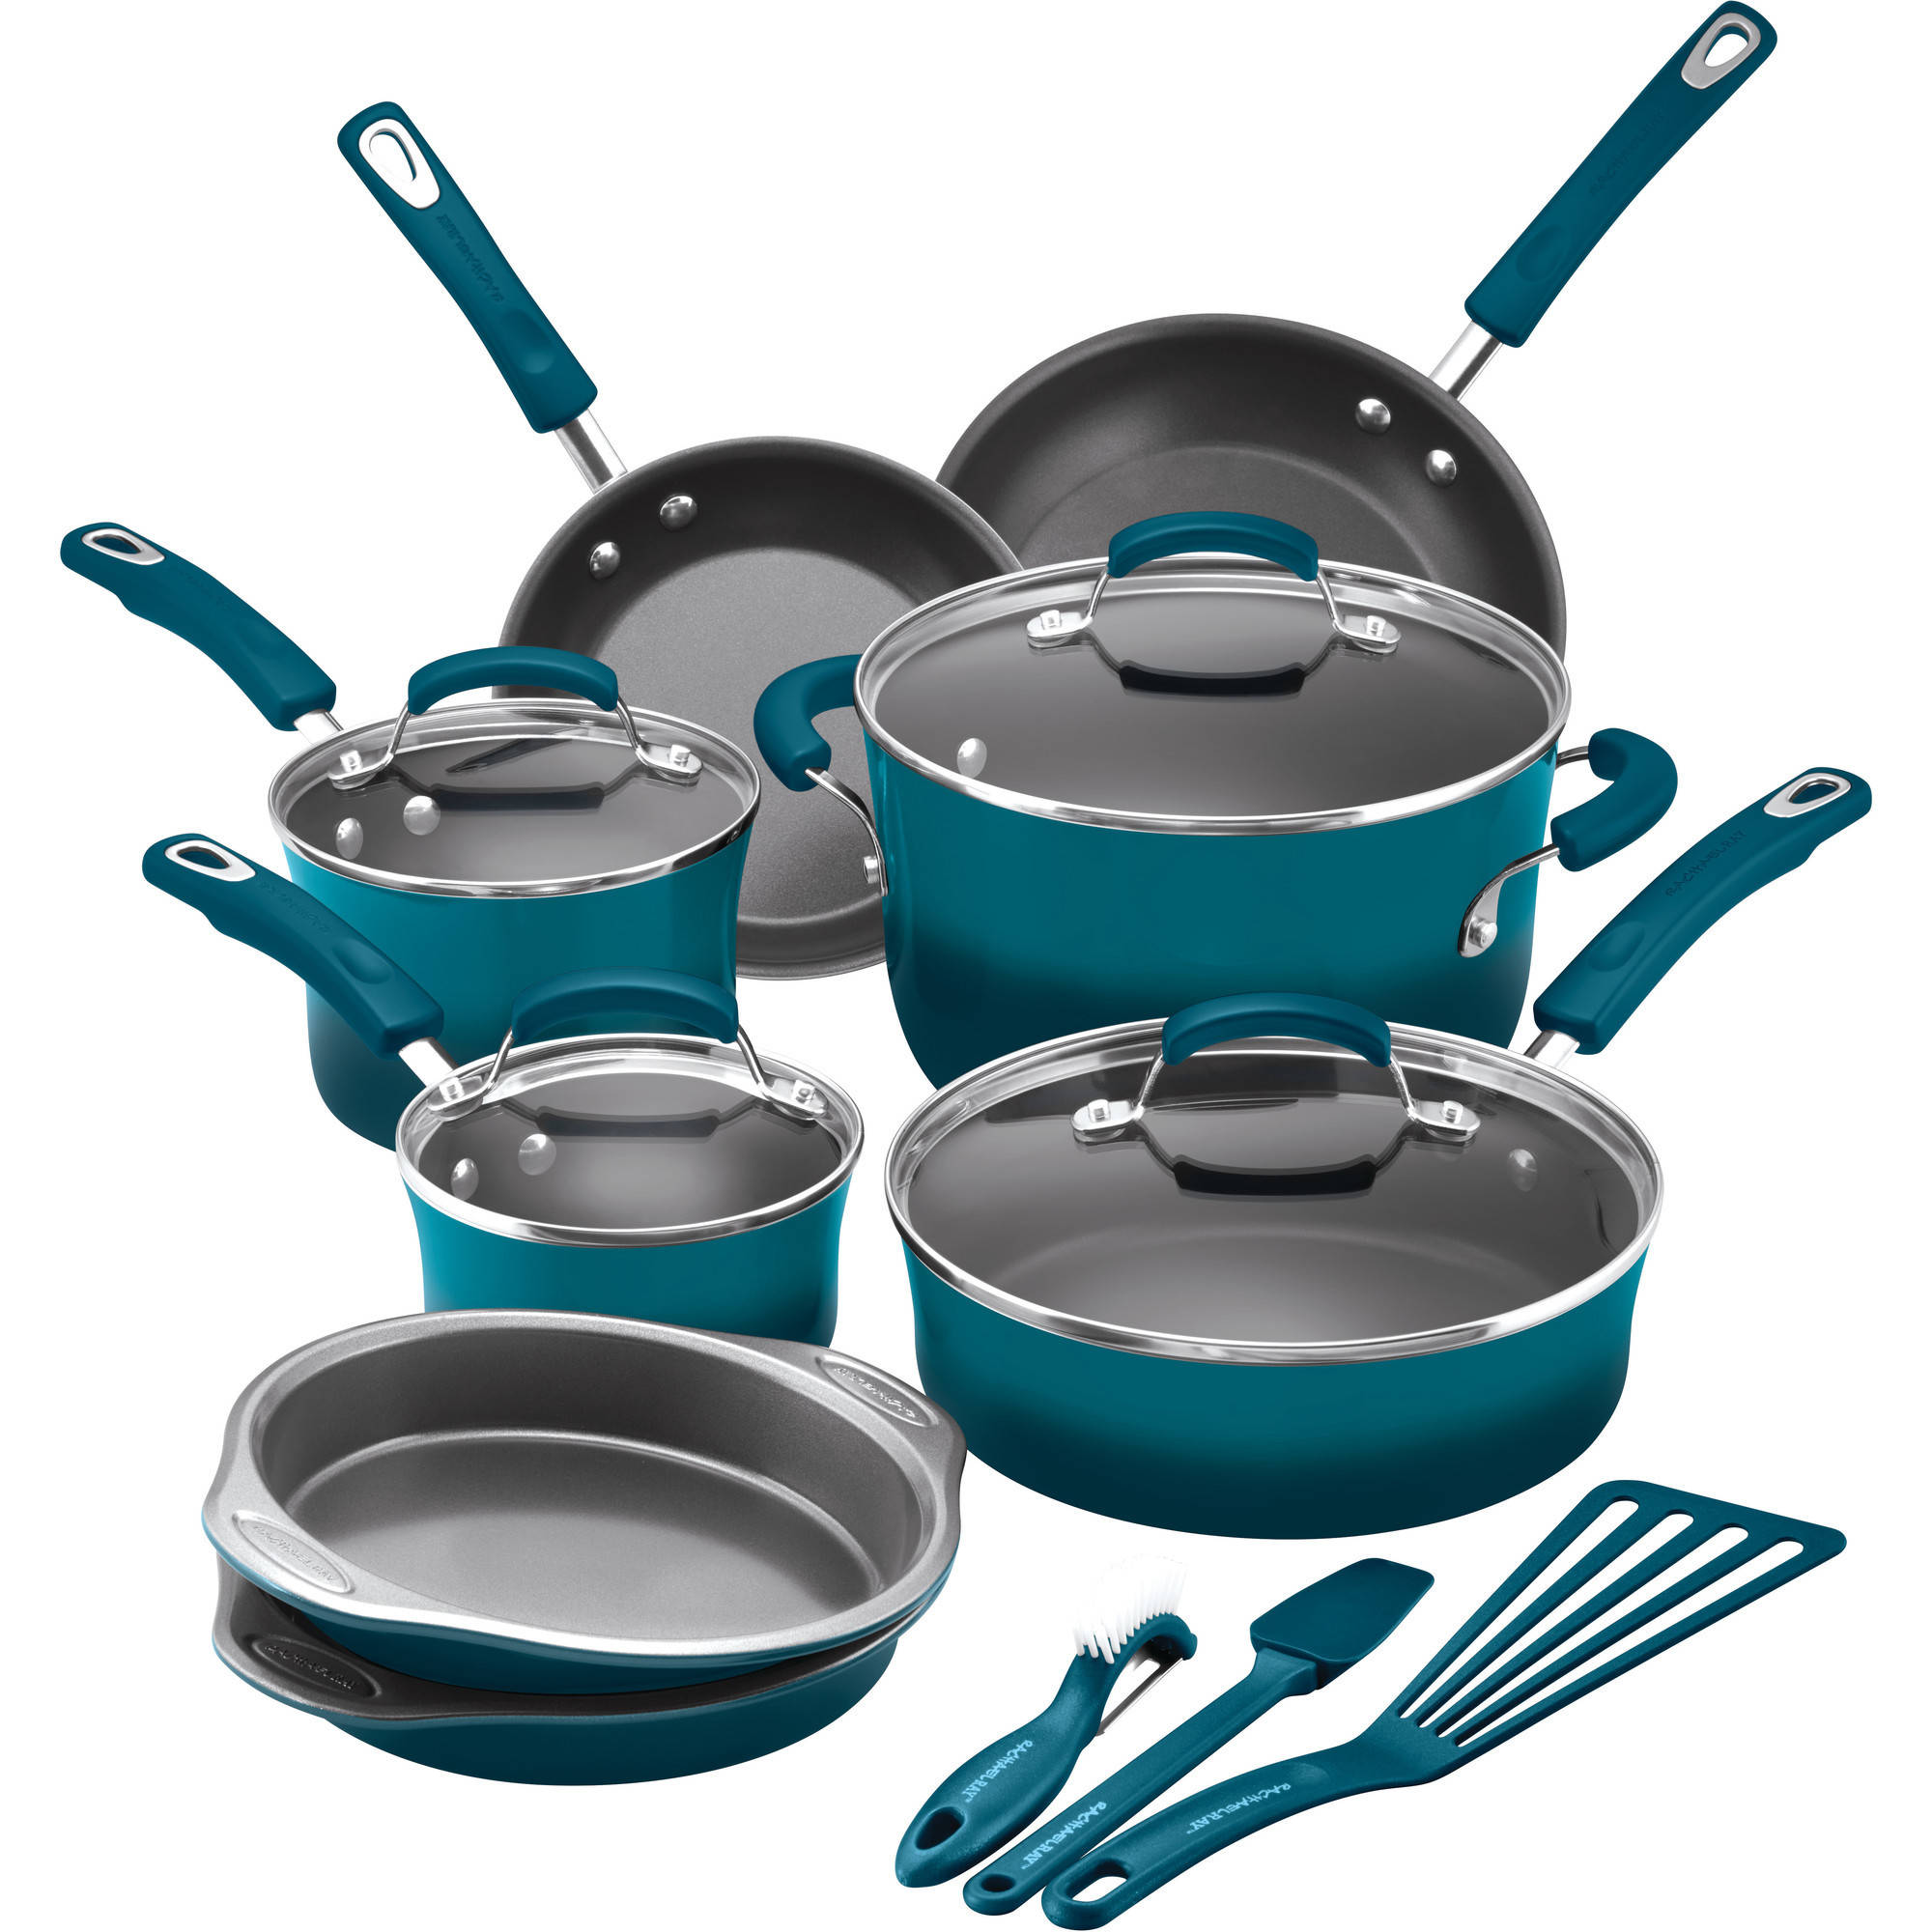 Rachael Ray 15-Piece Hard Enamel Nonstick Cookware Set